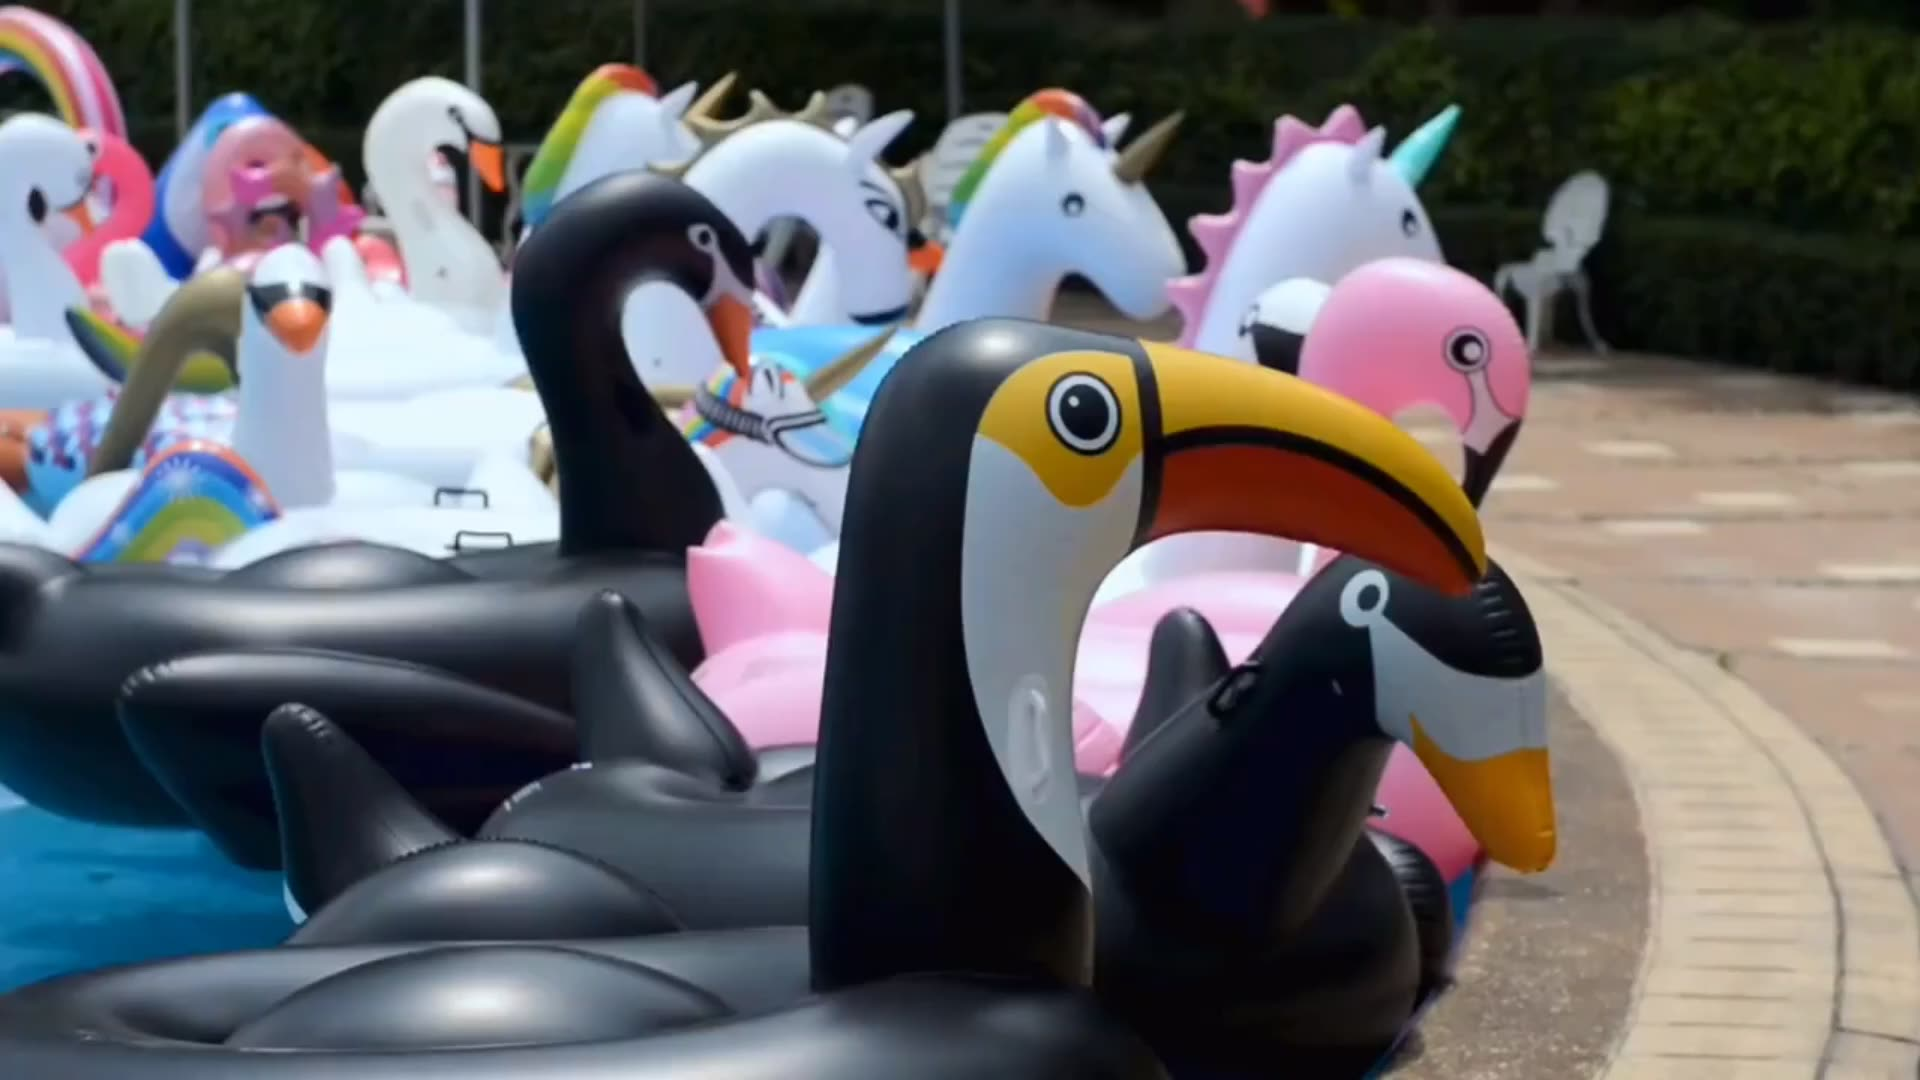 2018 New inflatable white swan toy, large inflatable water toys pool floating board